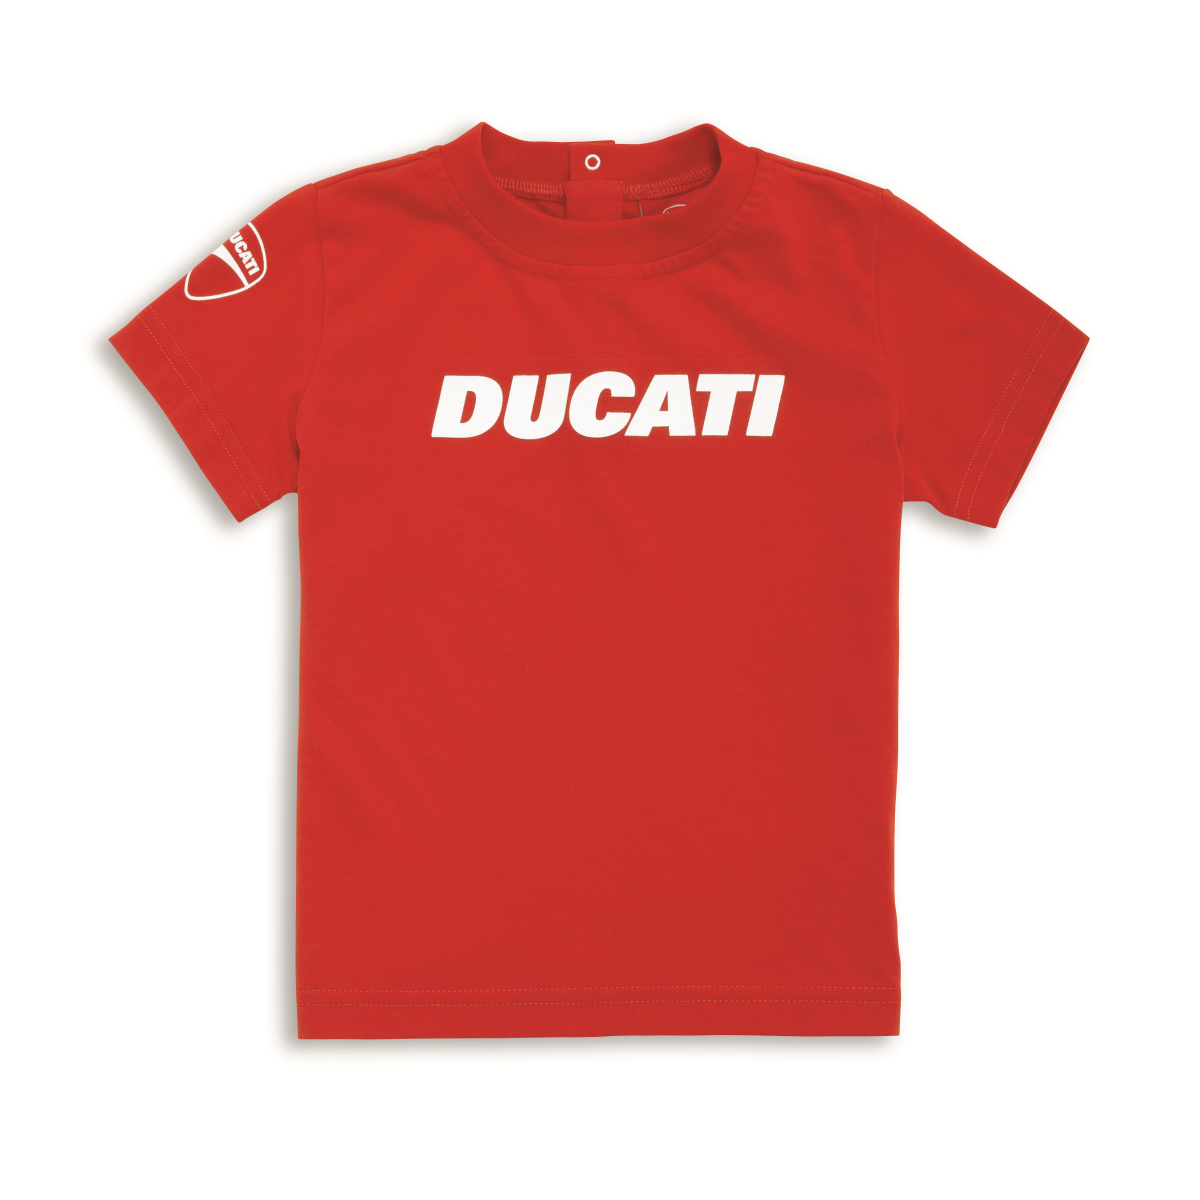 t shirt ducati ducatiana b b s team motos. Black Bedroom Furniture Sets. Home Design Ideas